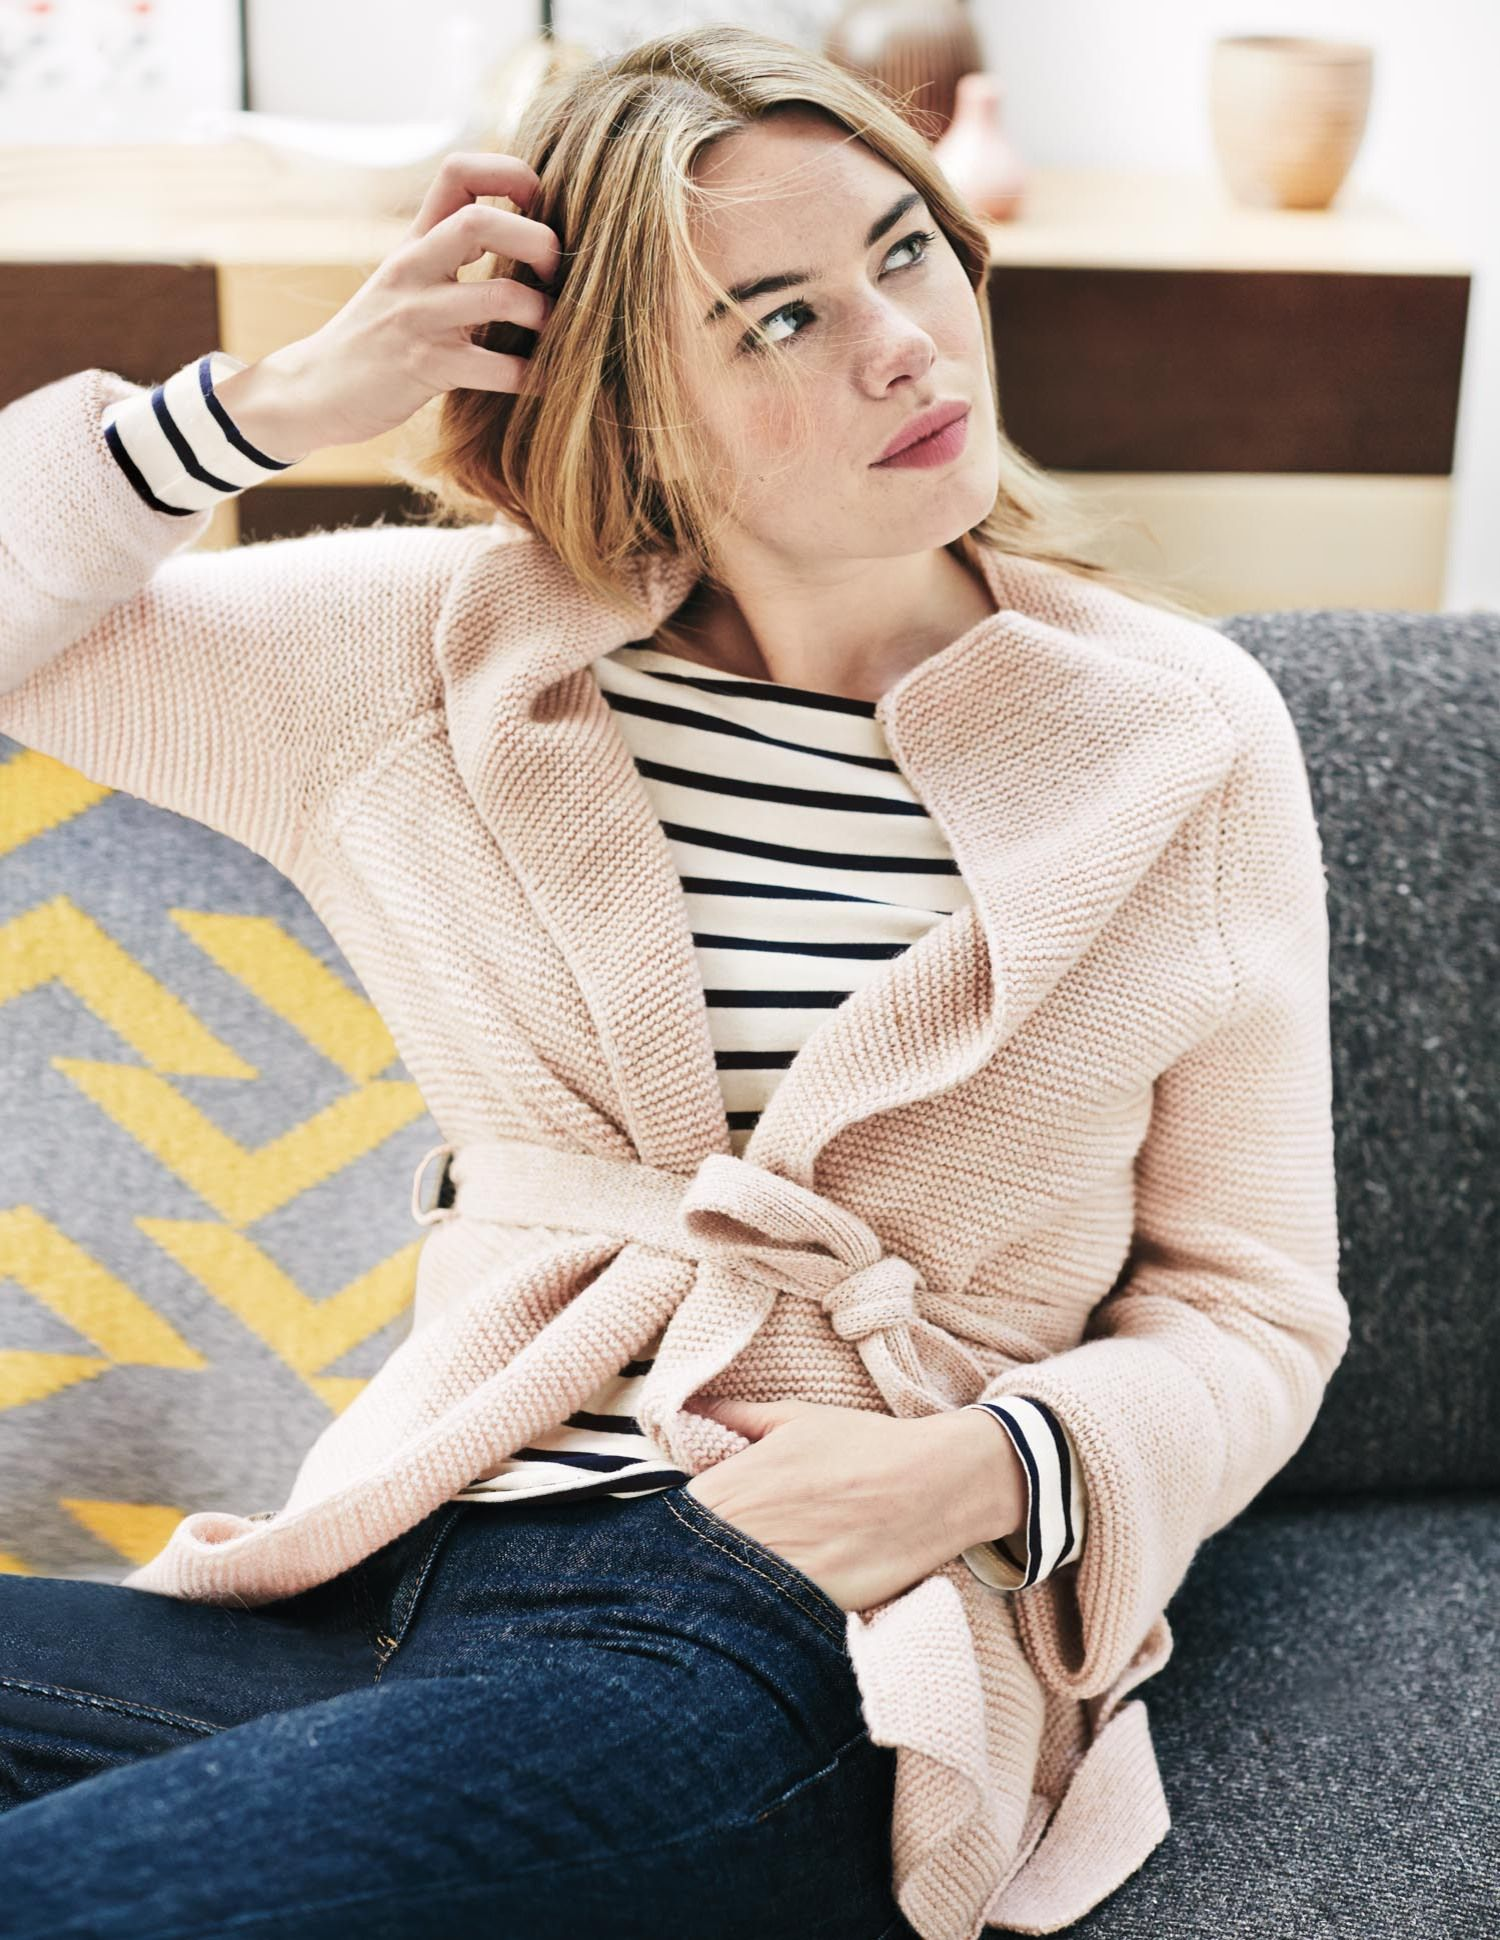 Barcelona Cardigan Wk959 Cardigans At Boden My Style Pinboard